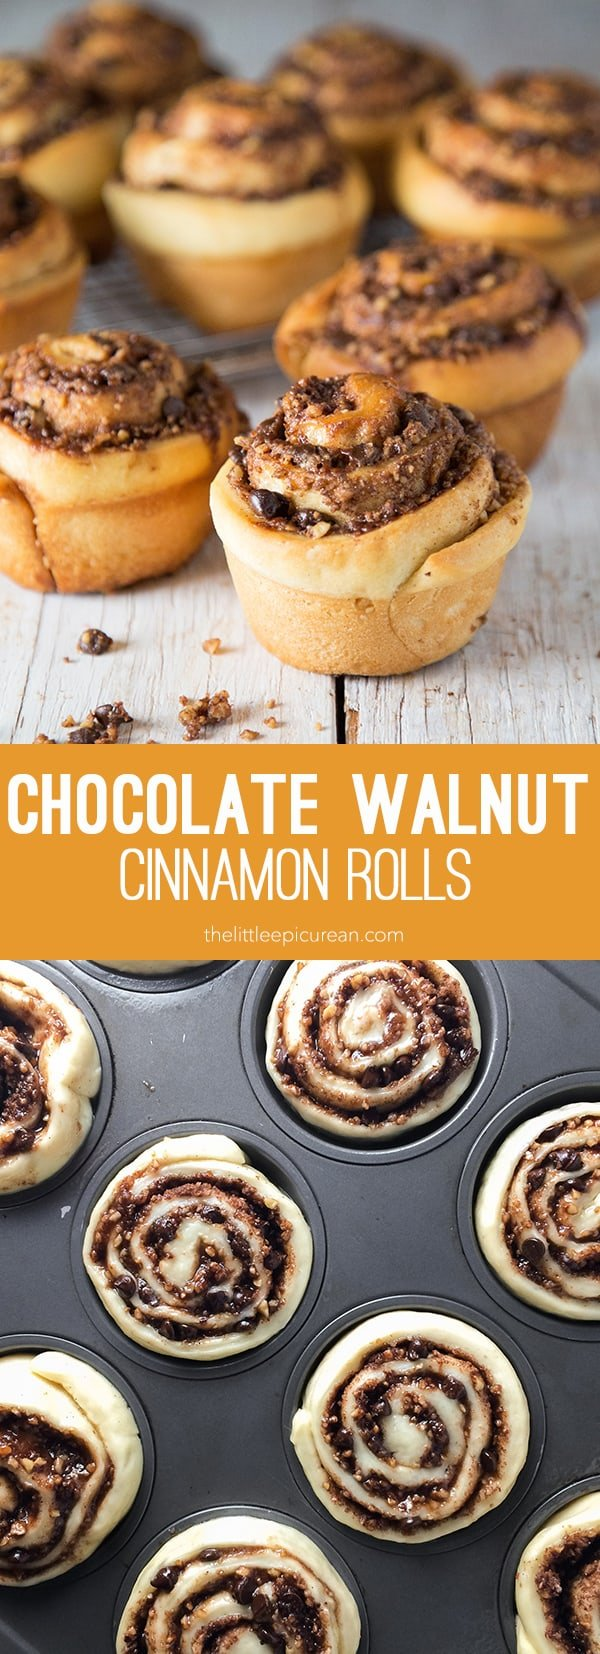 Chocolate Walnut Cinnamon Rolls